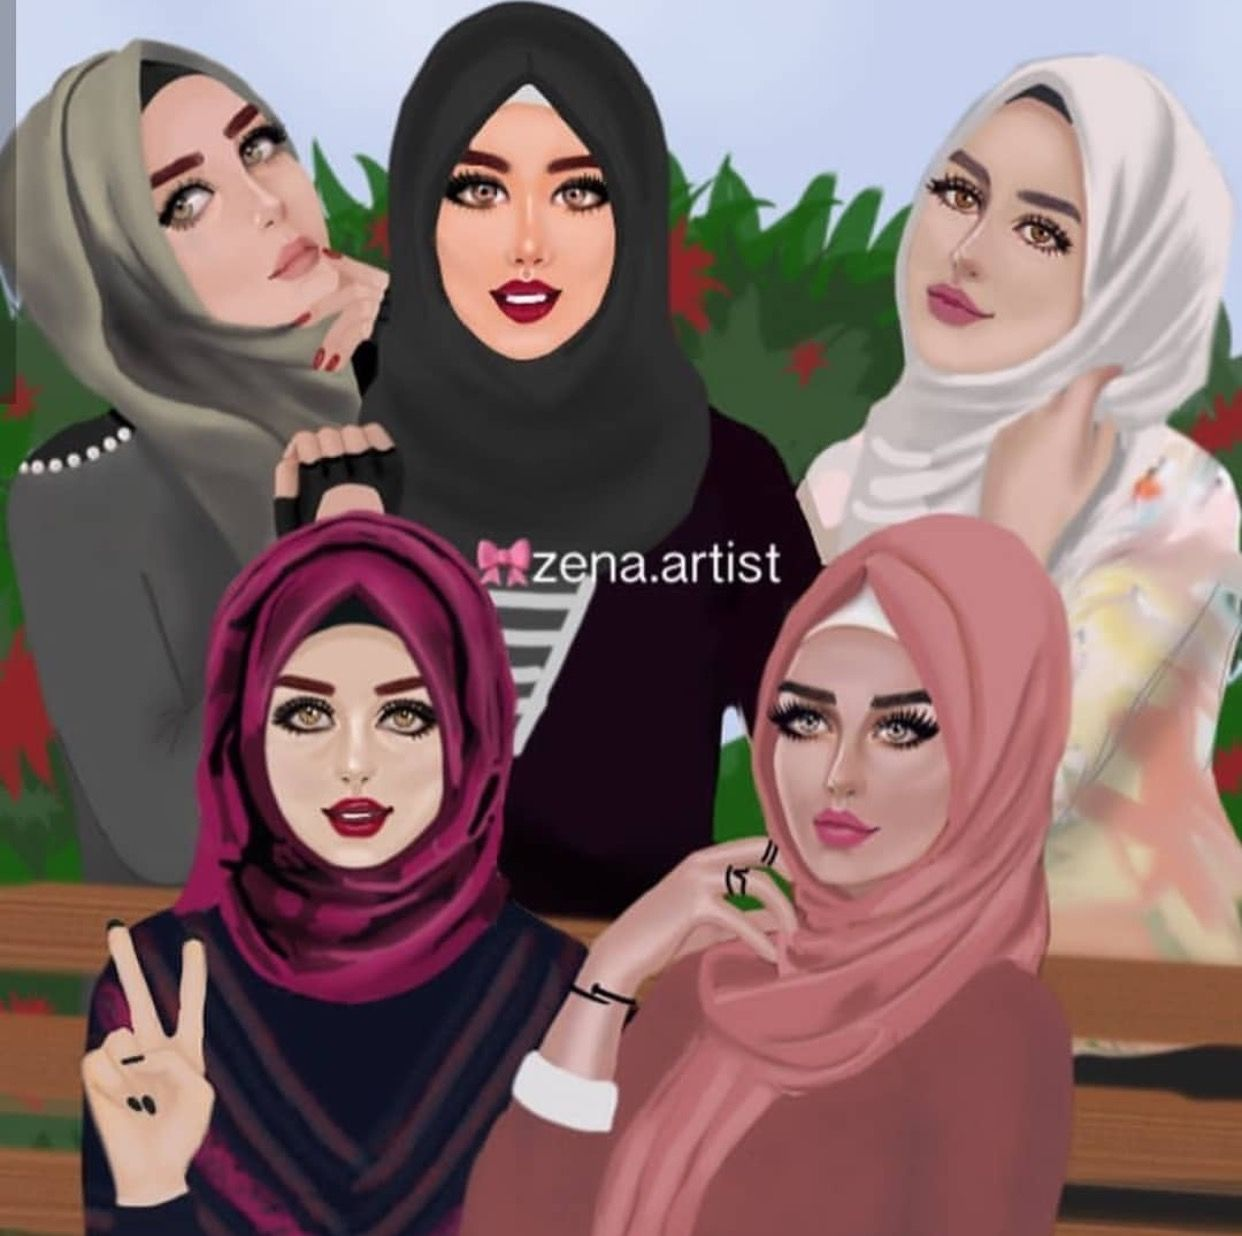 Hijab fashion (With images) Girly art, Girly drawings